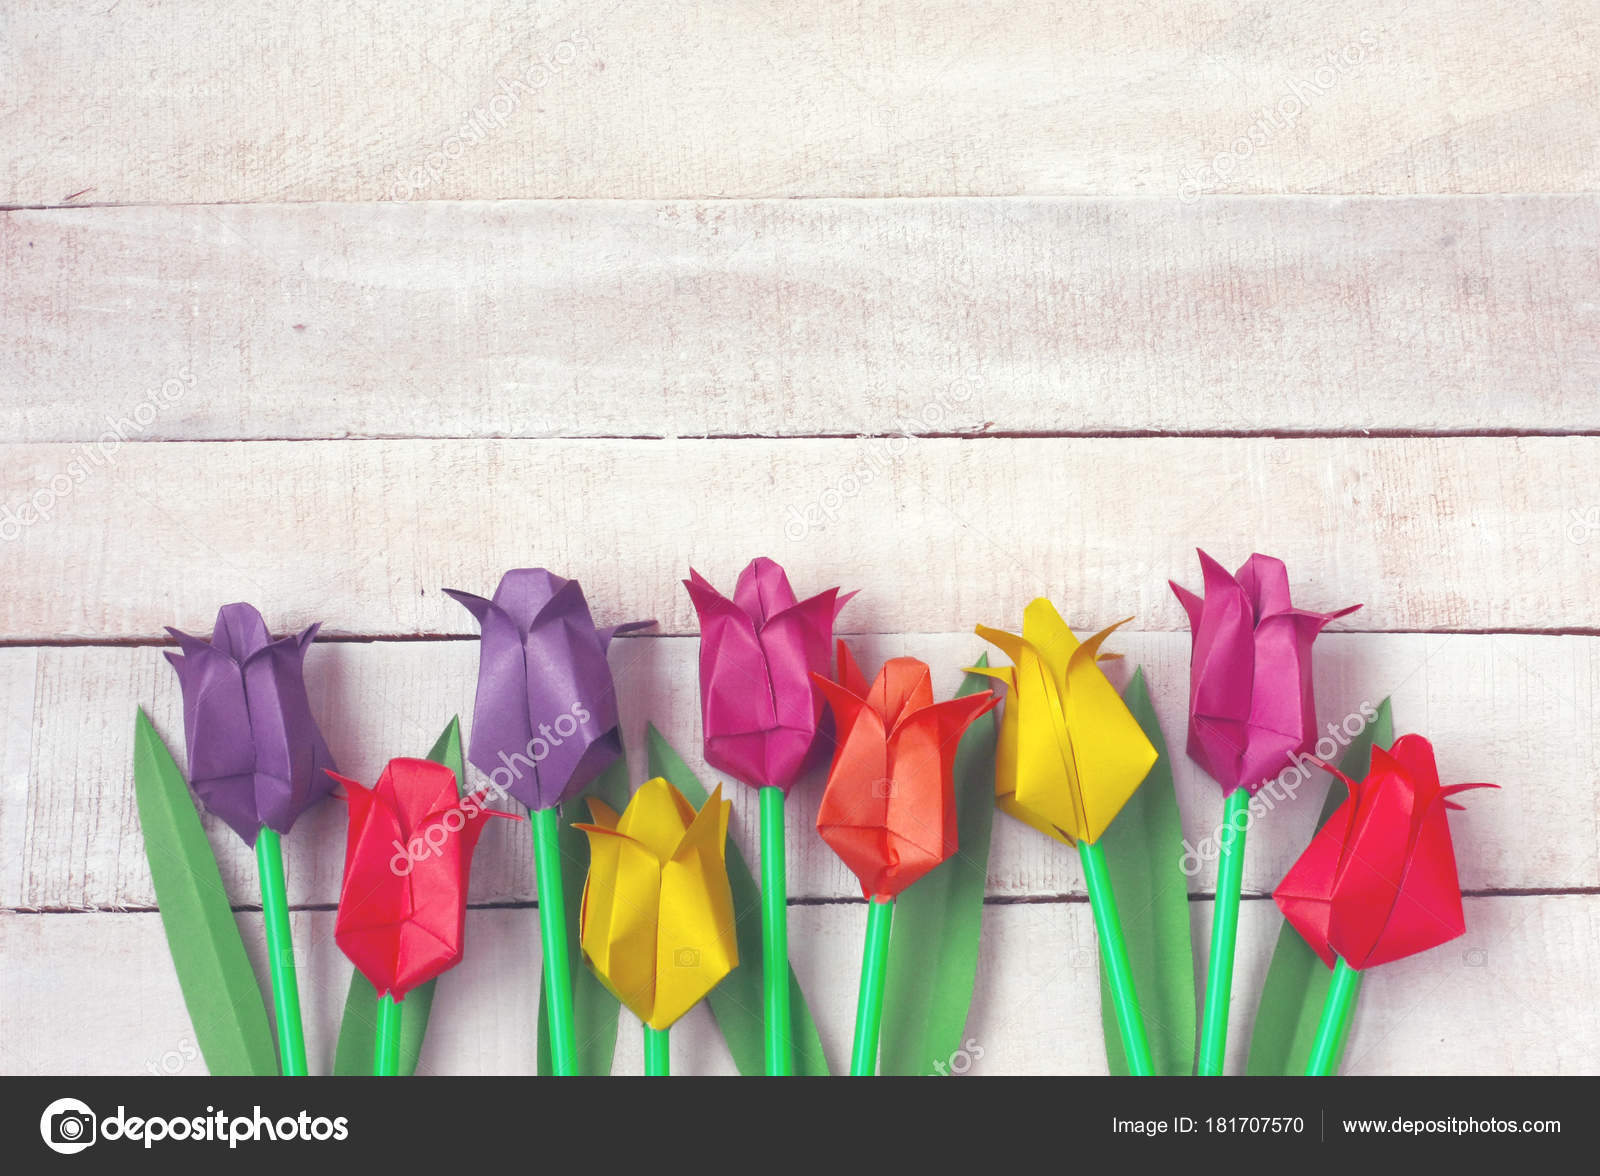 Colorful Tulips Origami Flowers Border On White Wooden Table Stock